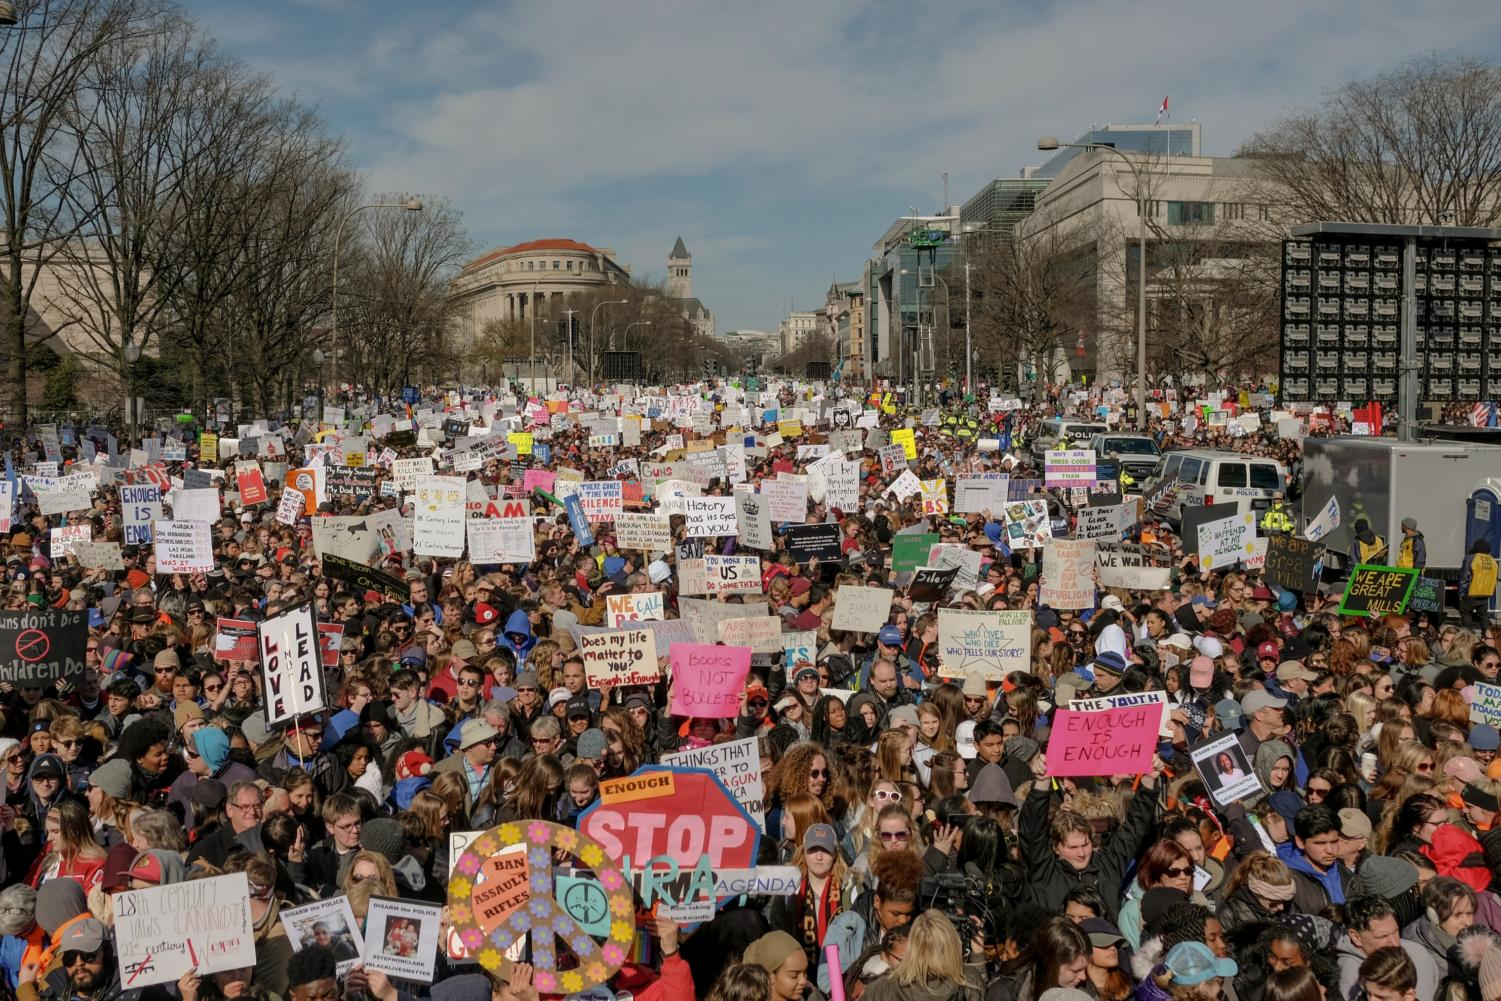 3/24/18,  Washington, D.C.   Demonstrators fill Pennsylvania Avenue in preparation for the March for Our Lives Rally in Washington, D.C. on March 24, 2018.   Gabriella Demczuk / TIME